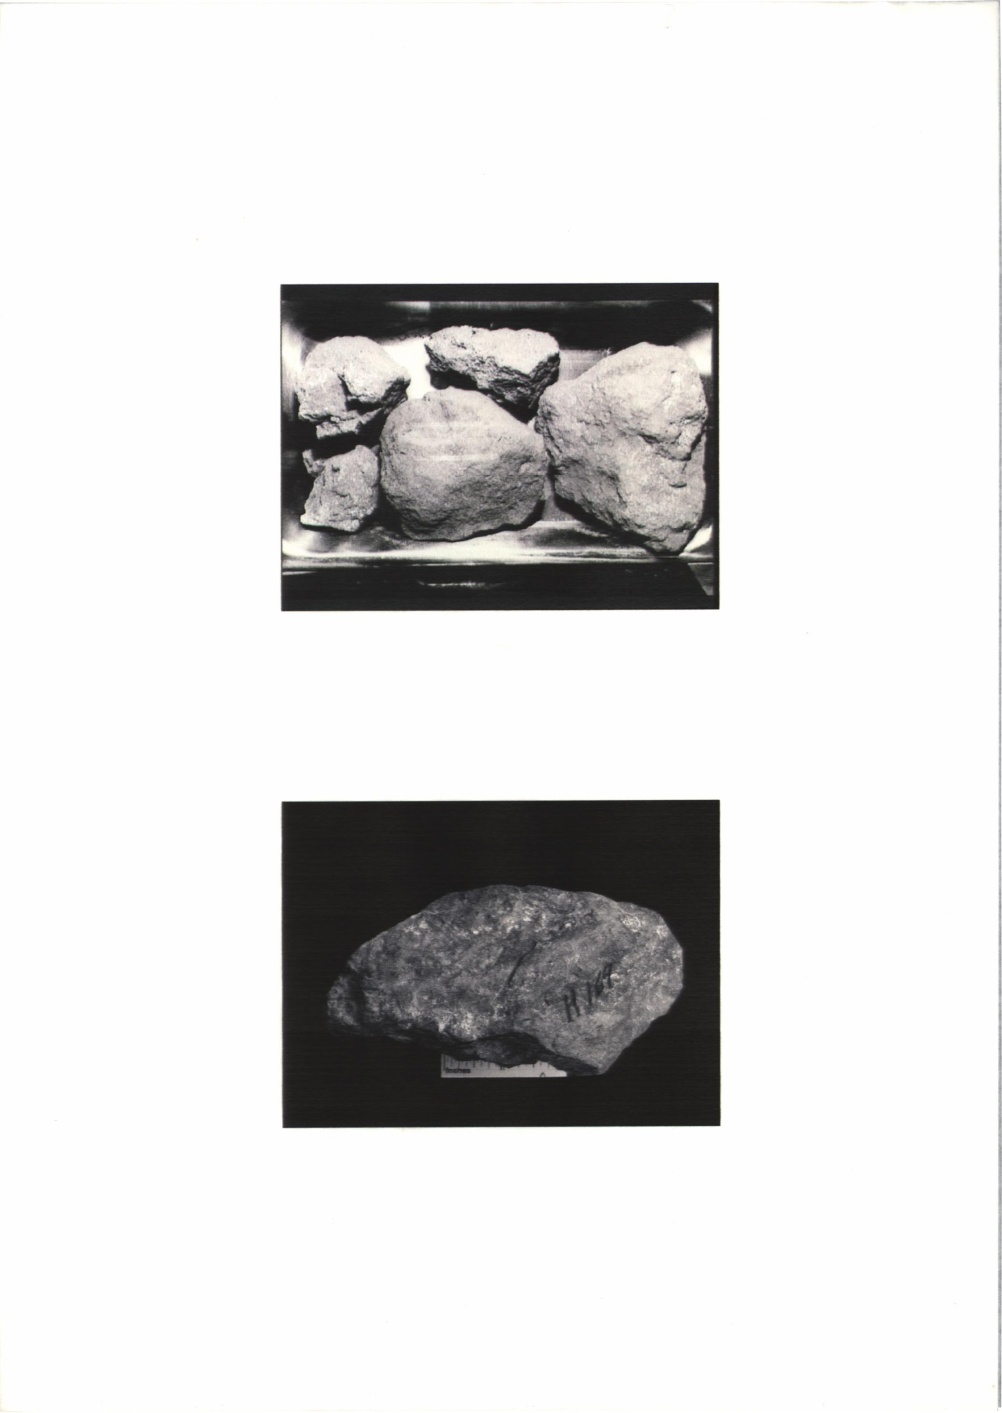 Madoka Furuhashi, Condition Report (Uranium and Lunar Samples), 2011